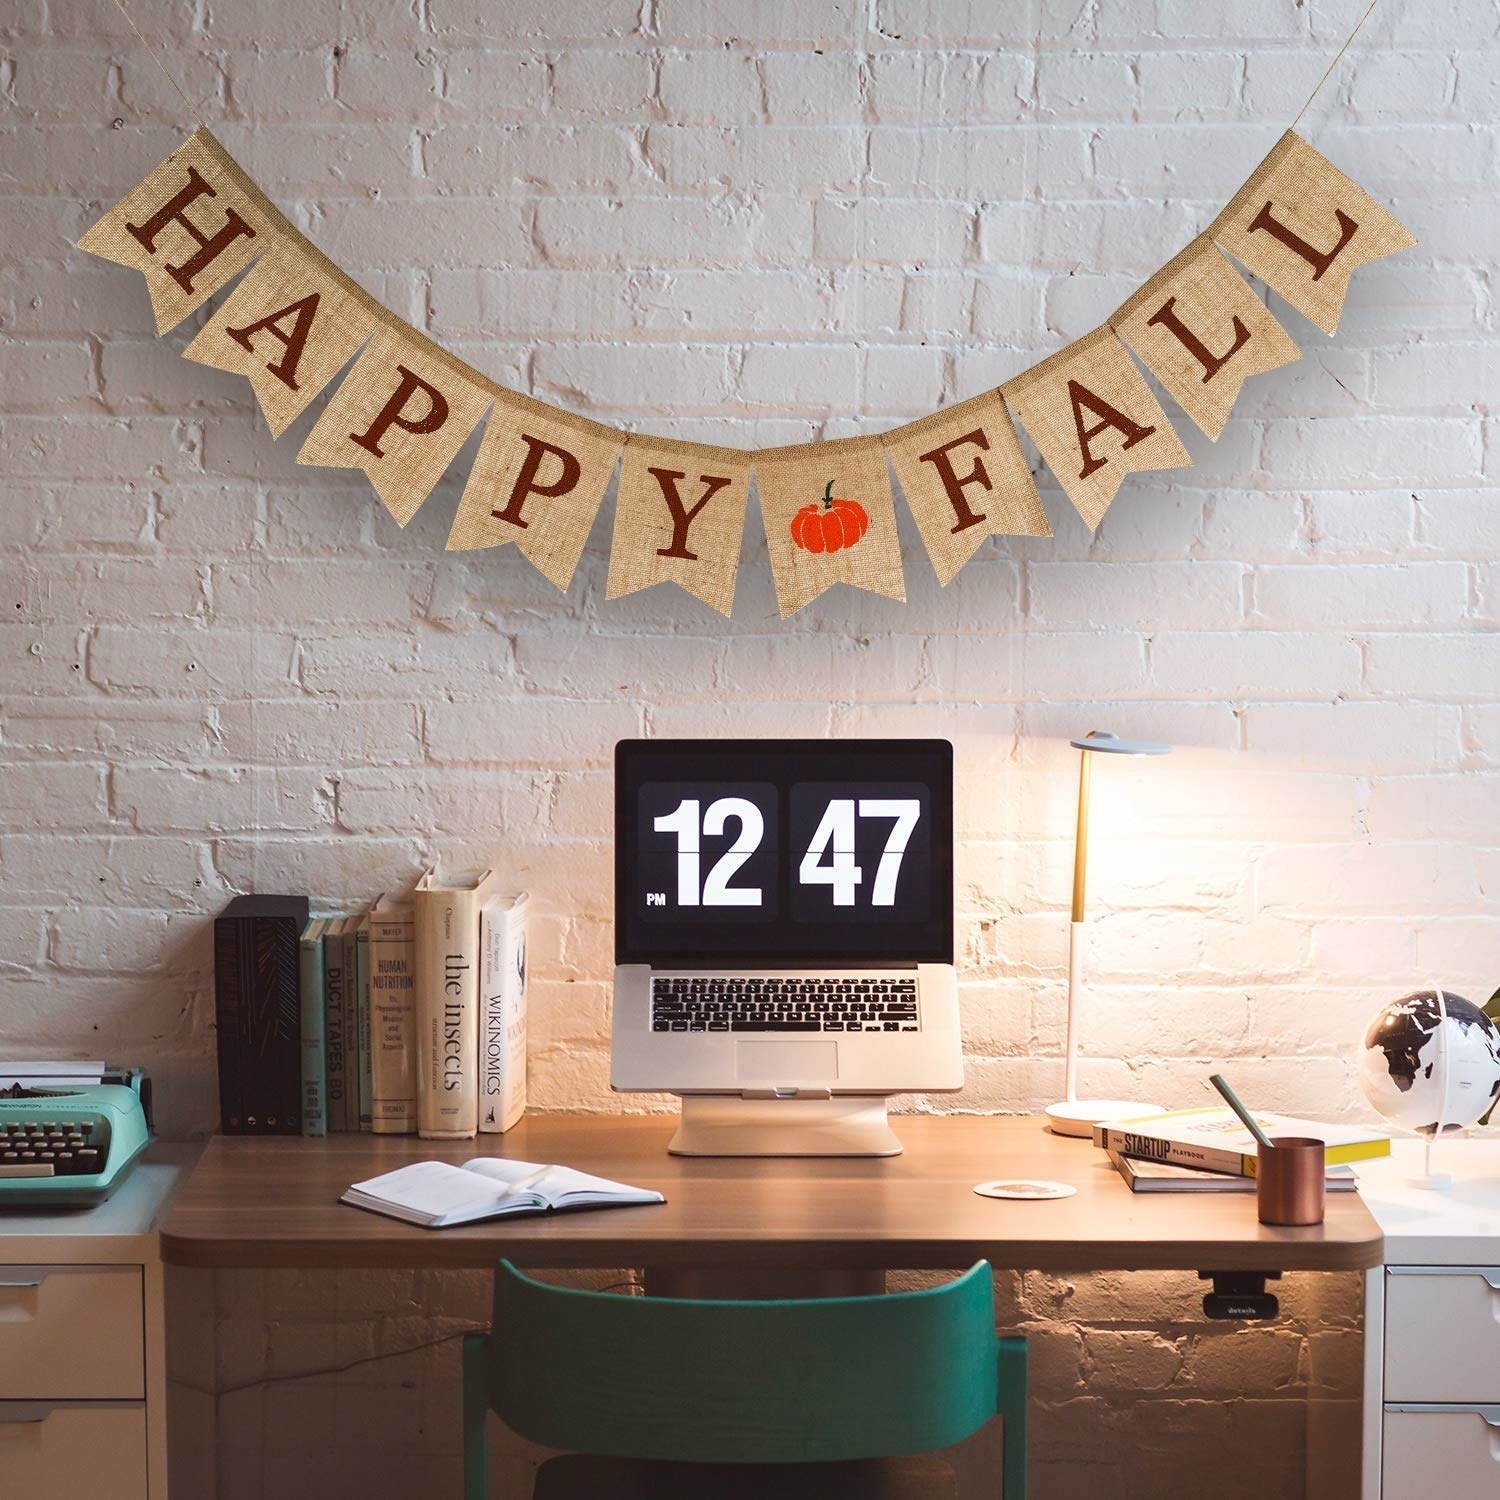 """The natural burlap banner says """"Happy Fall"""" with a pumpkin between the two words"""